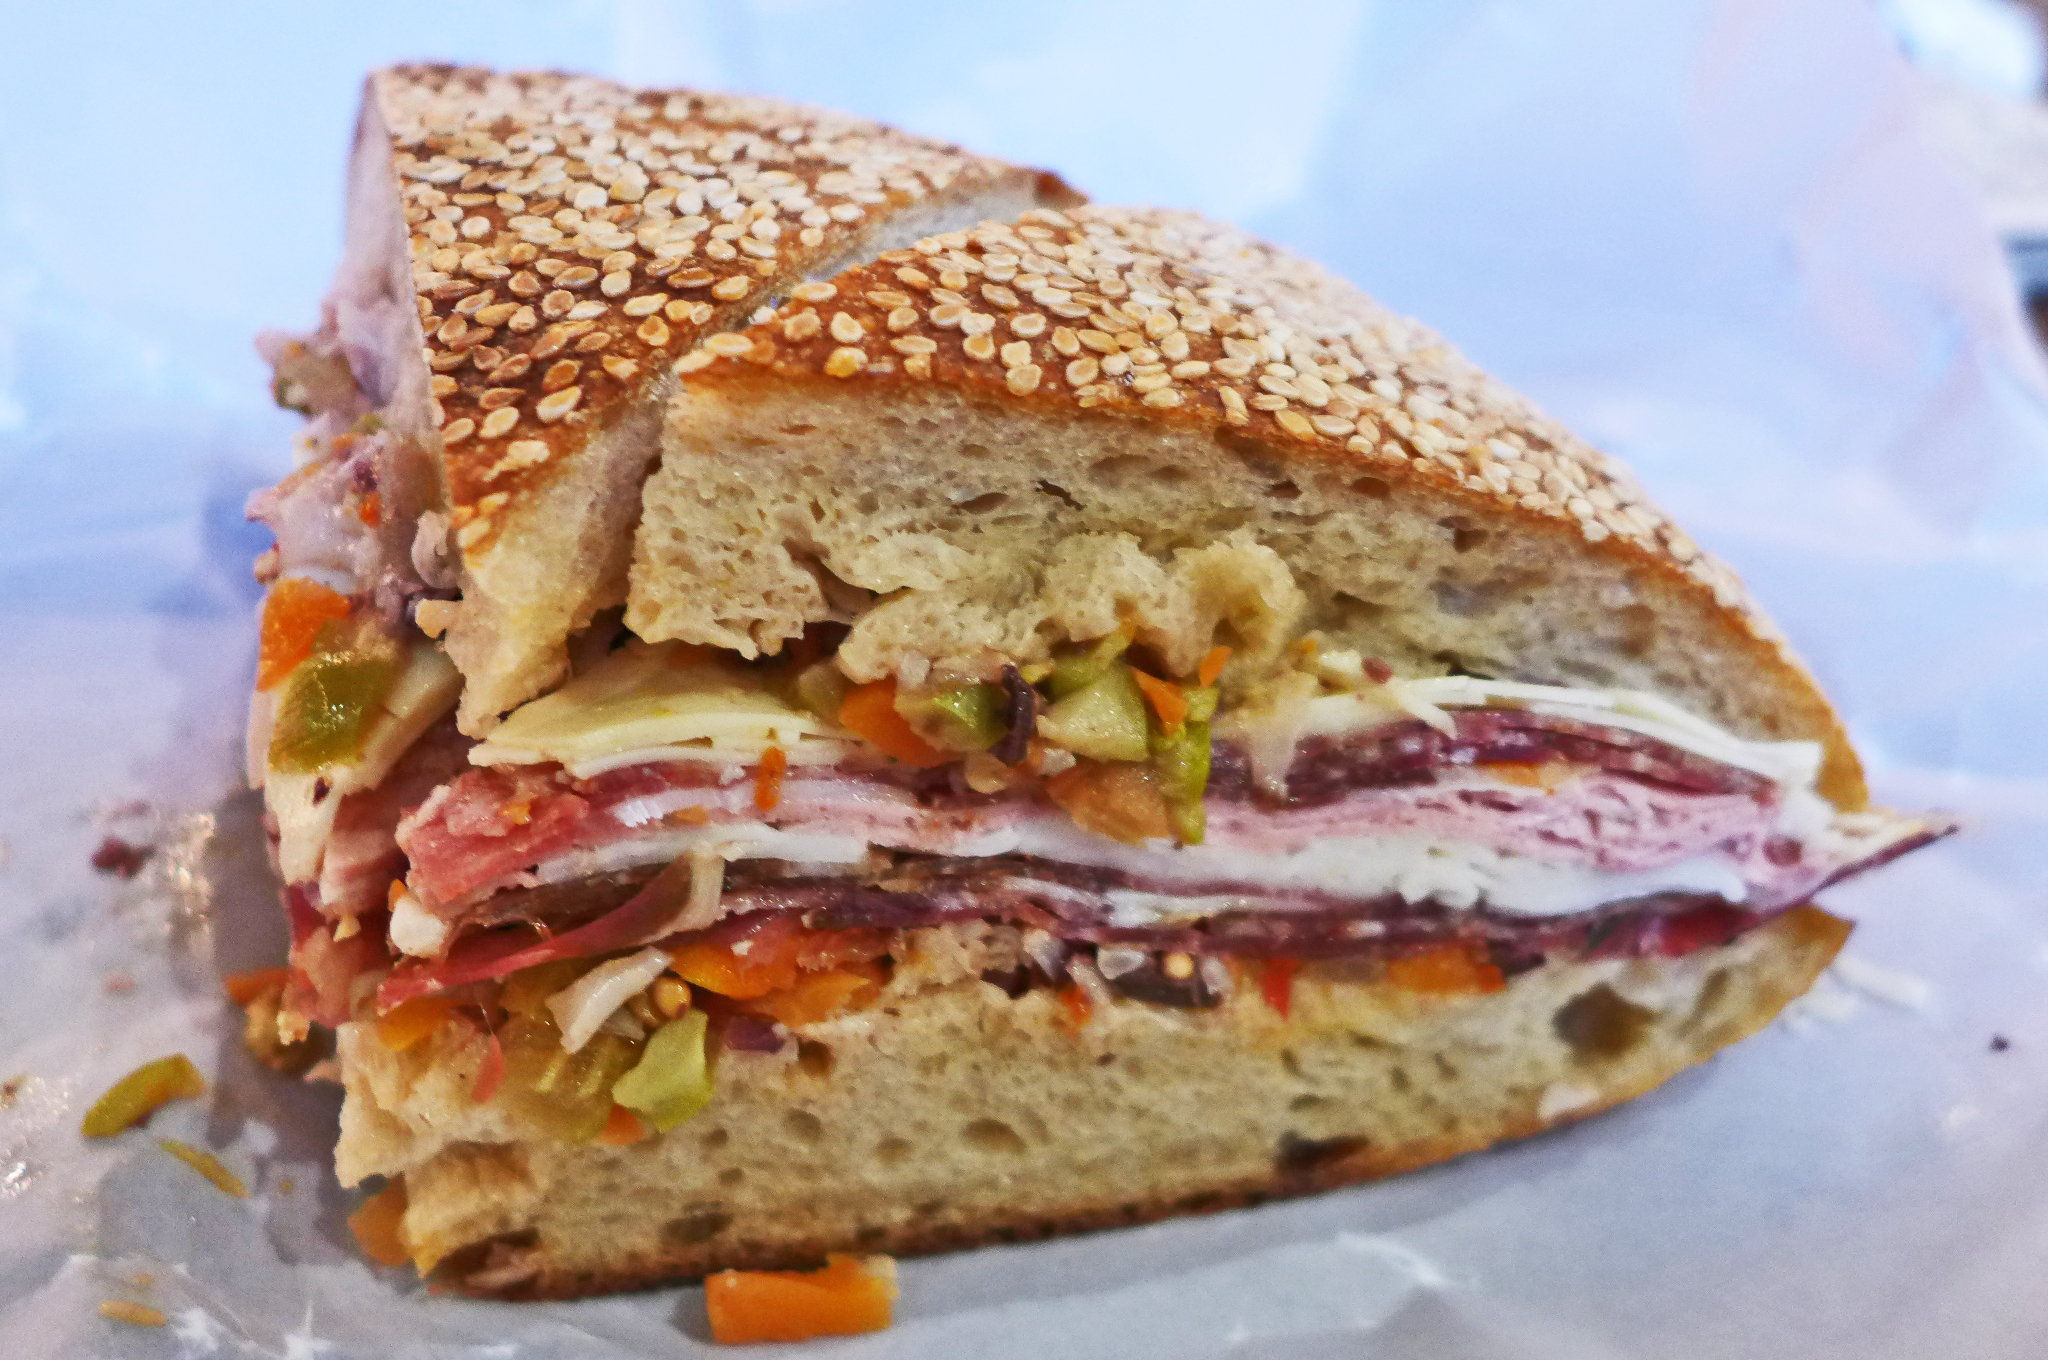 A quarter wedge of round sesame bread piled with cold cuts.